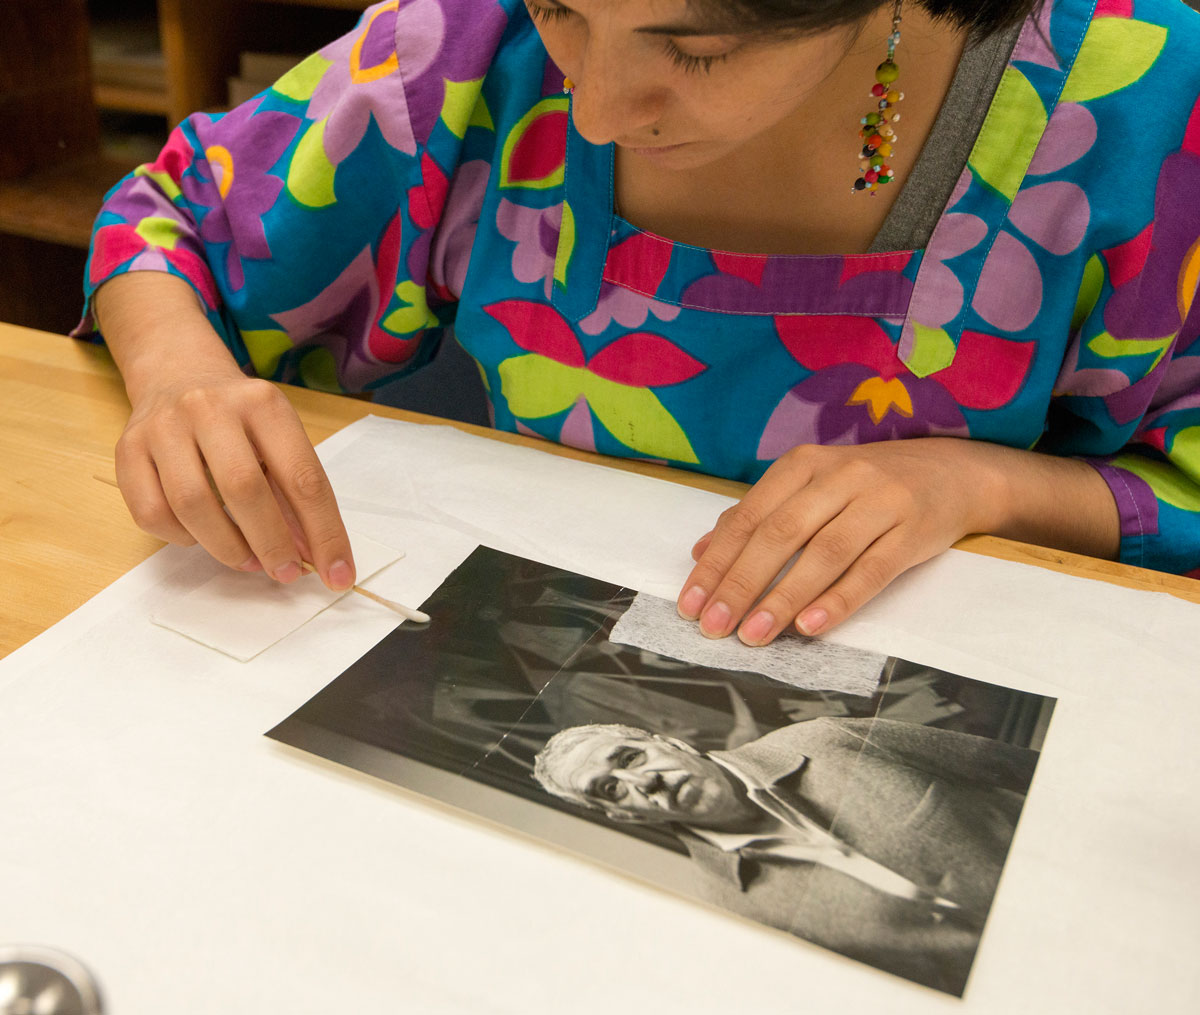 Preserving Gabriel García Márquez's life and legacy